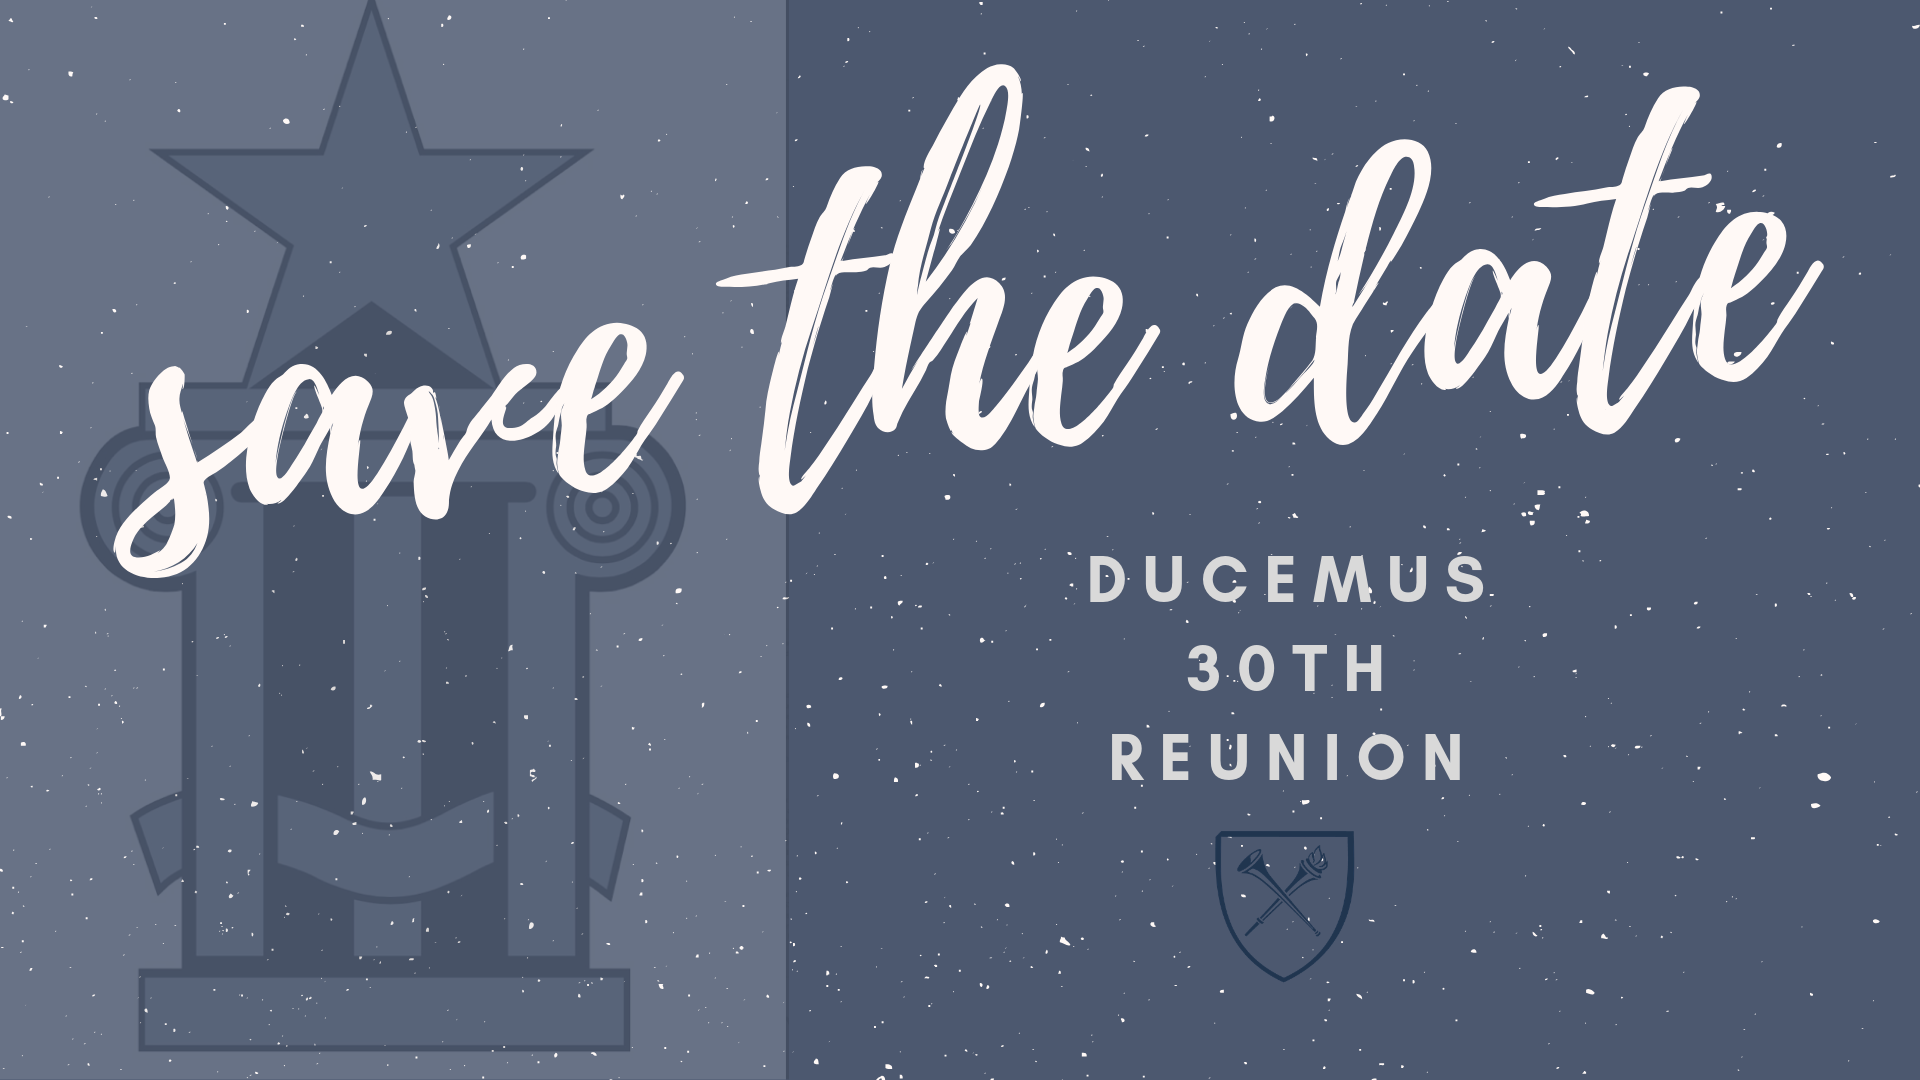 Emory Calendar 2020 Emory University   Save the Date   DS Reunion 2020